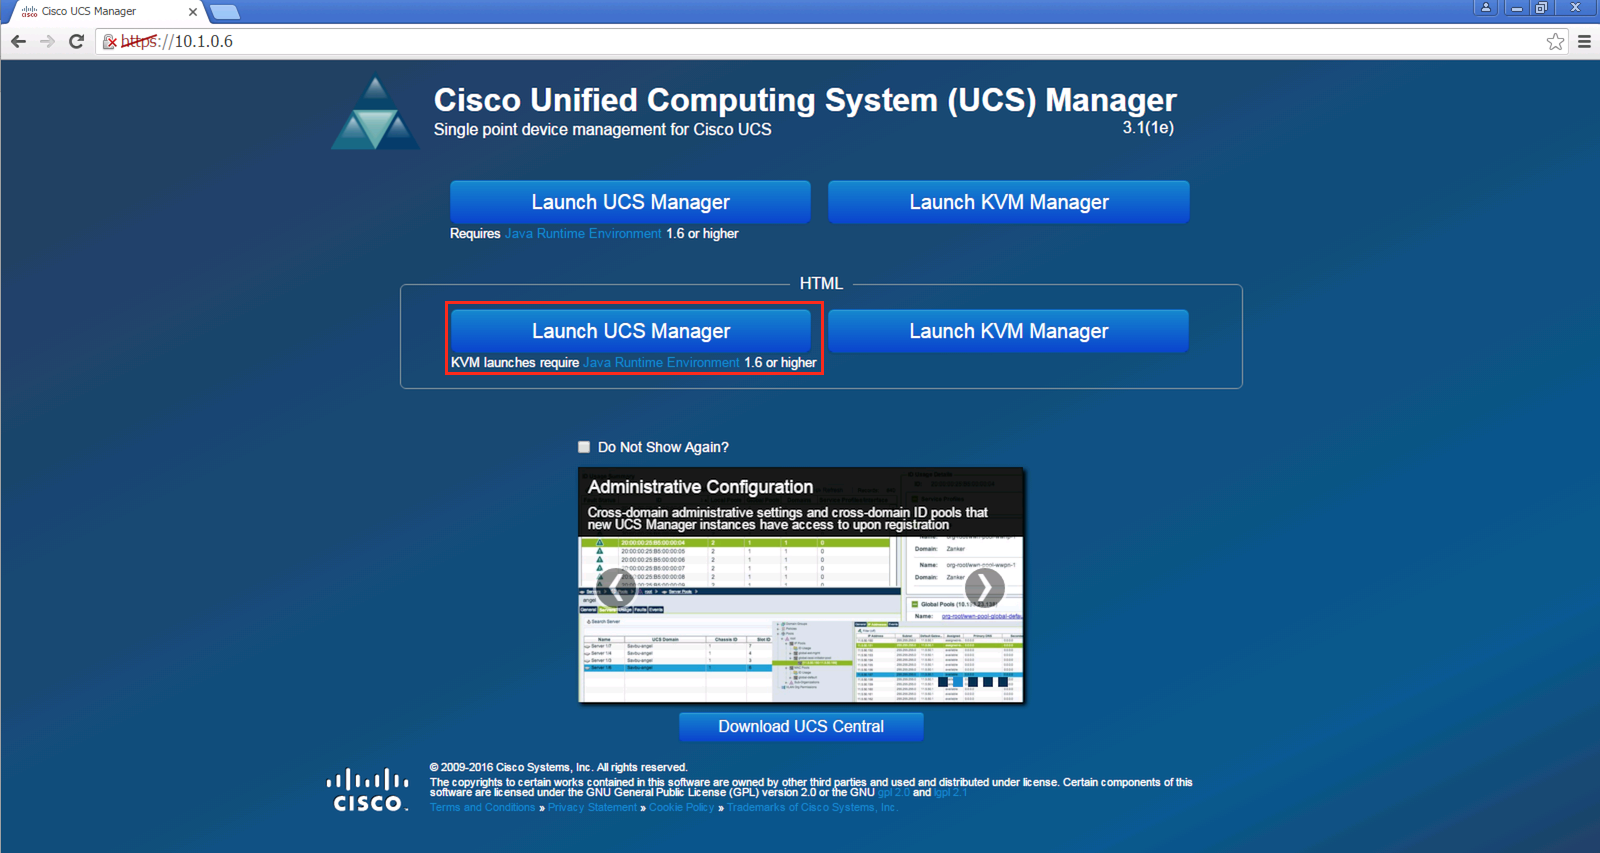 How To Connect To Cisco Ucs Manager